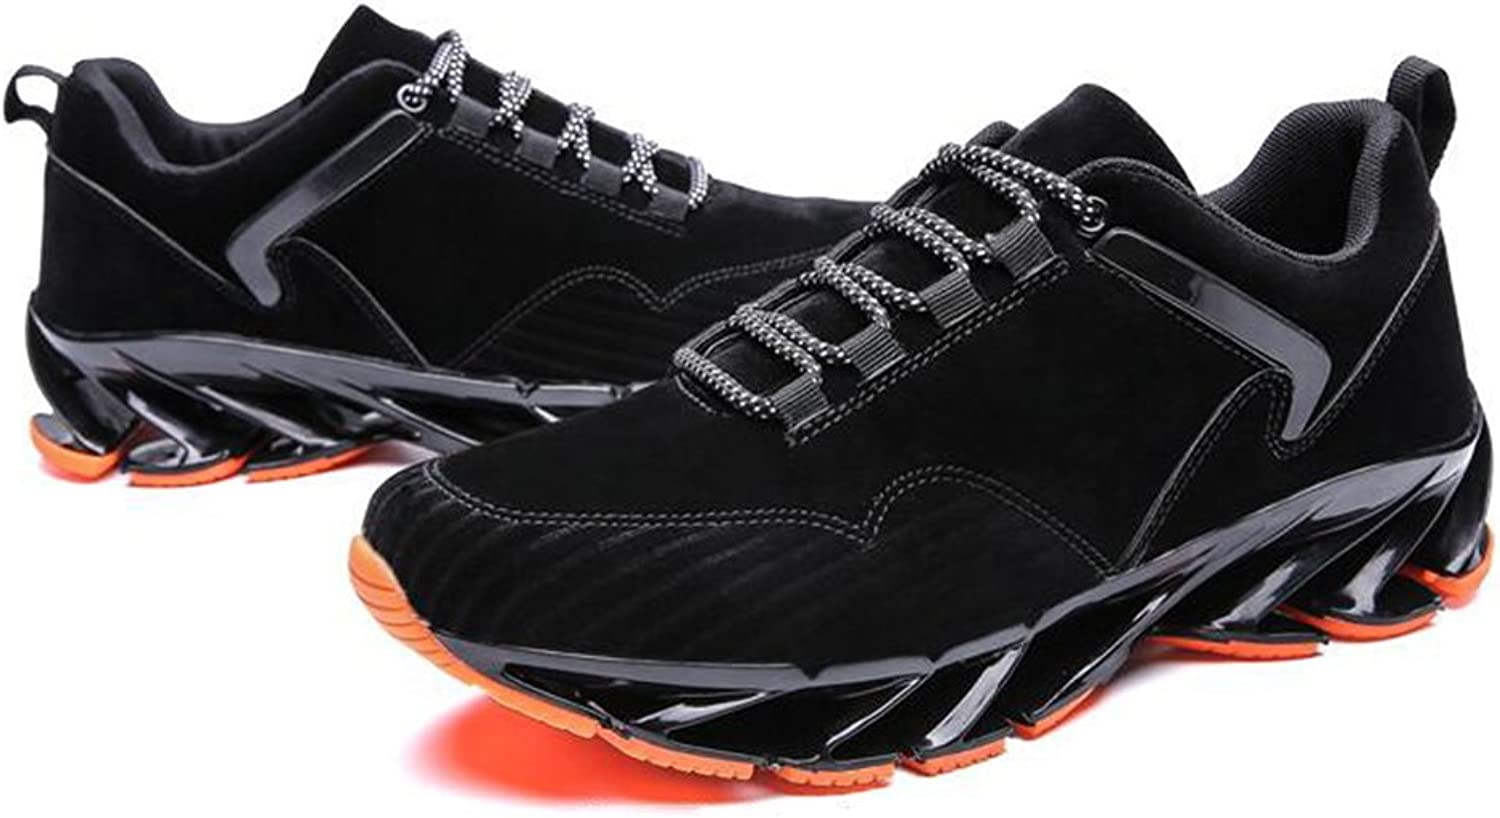 Men's shoes Feifei Spring and Autumn Leisure Sports shoes 2 Colours (Size Multiple Choice)